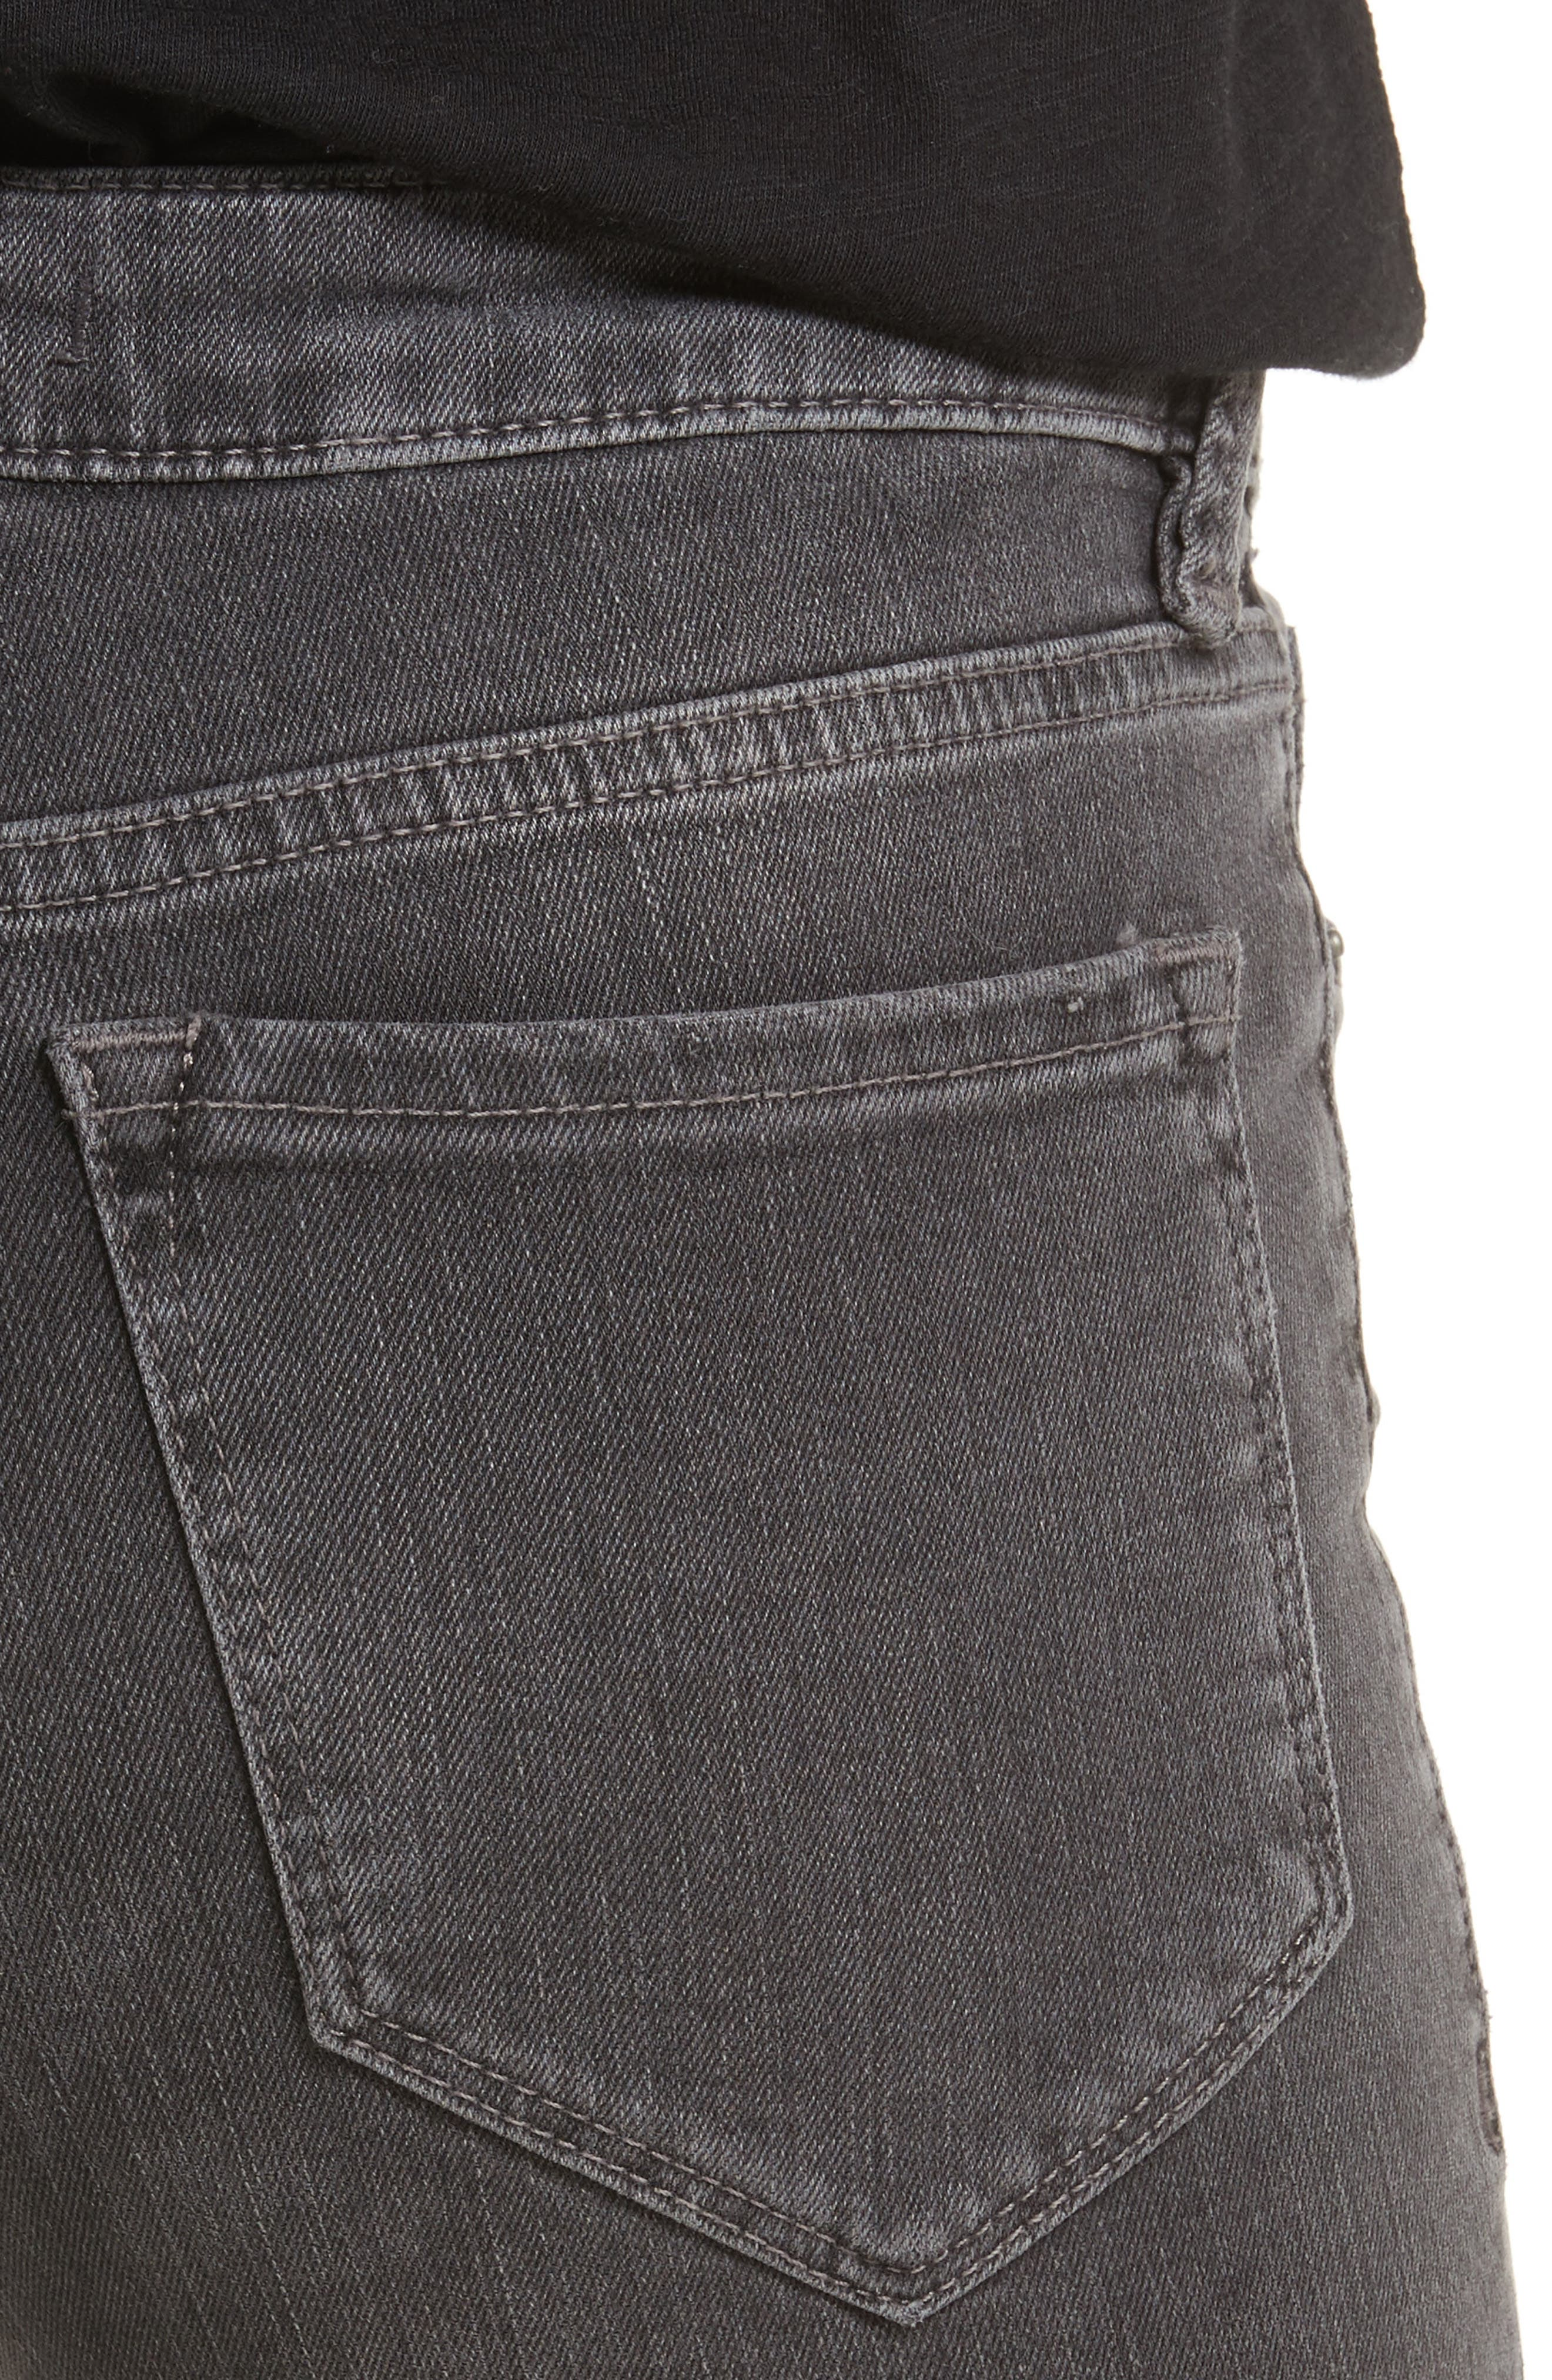 FREE PEOPLE,                             Crop Straight Leg Jeans,                             Alternate thumbnail 4, color,                             001